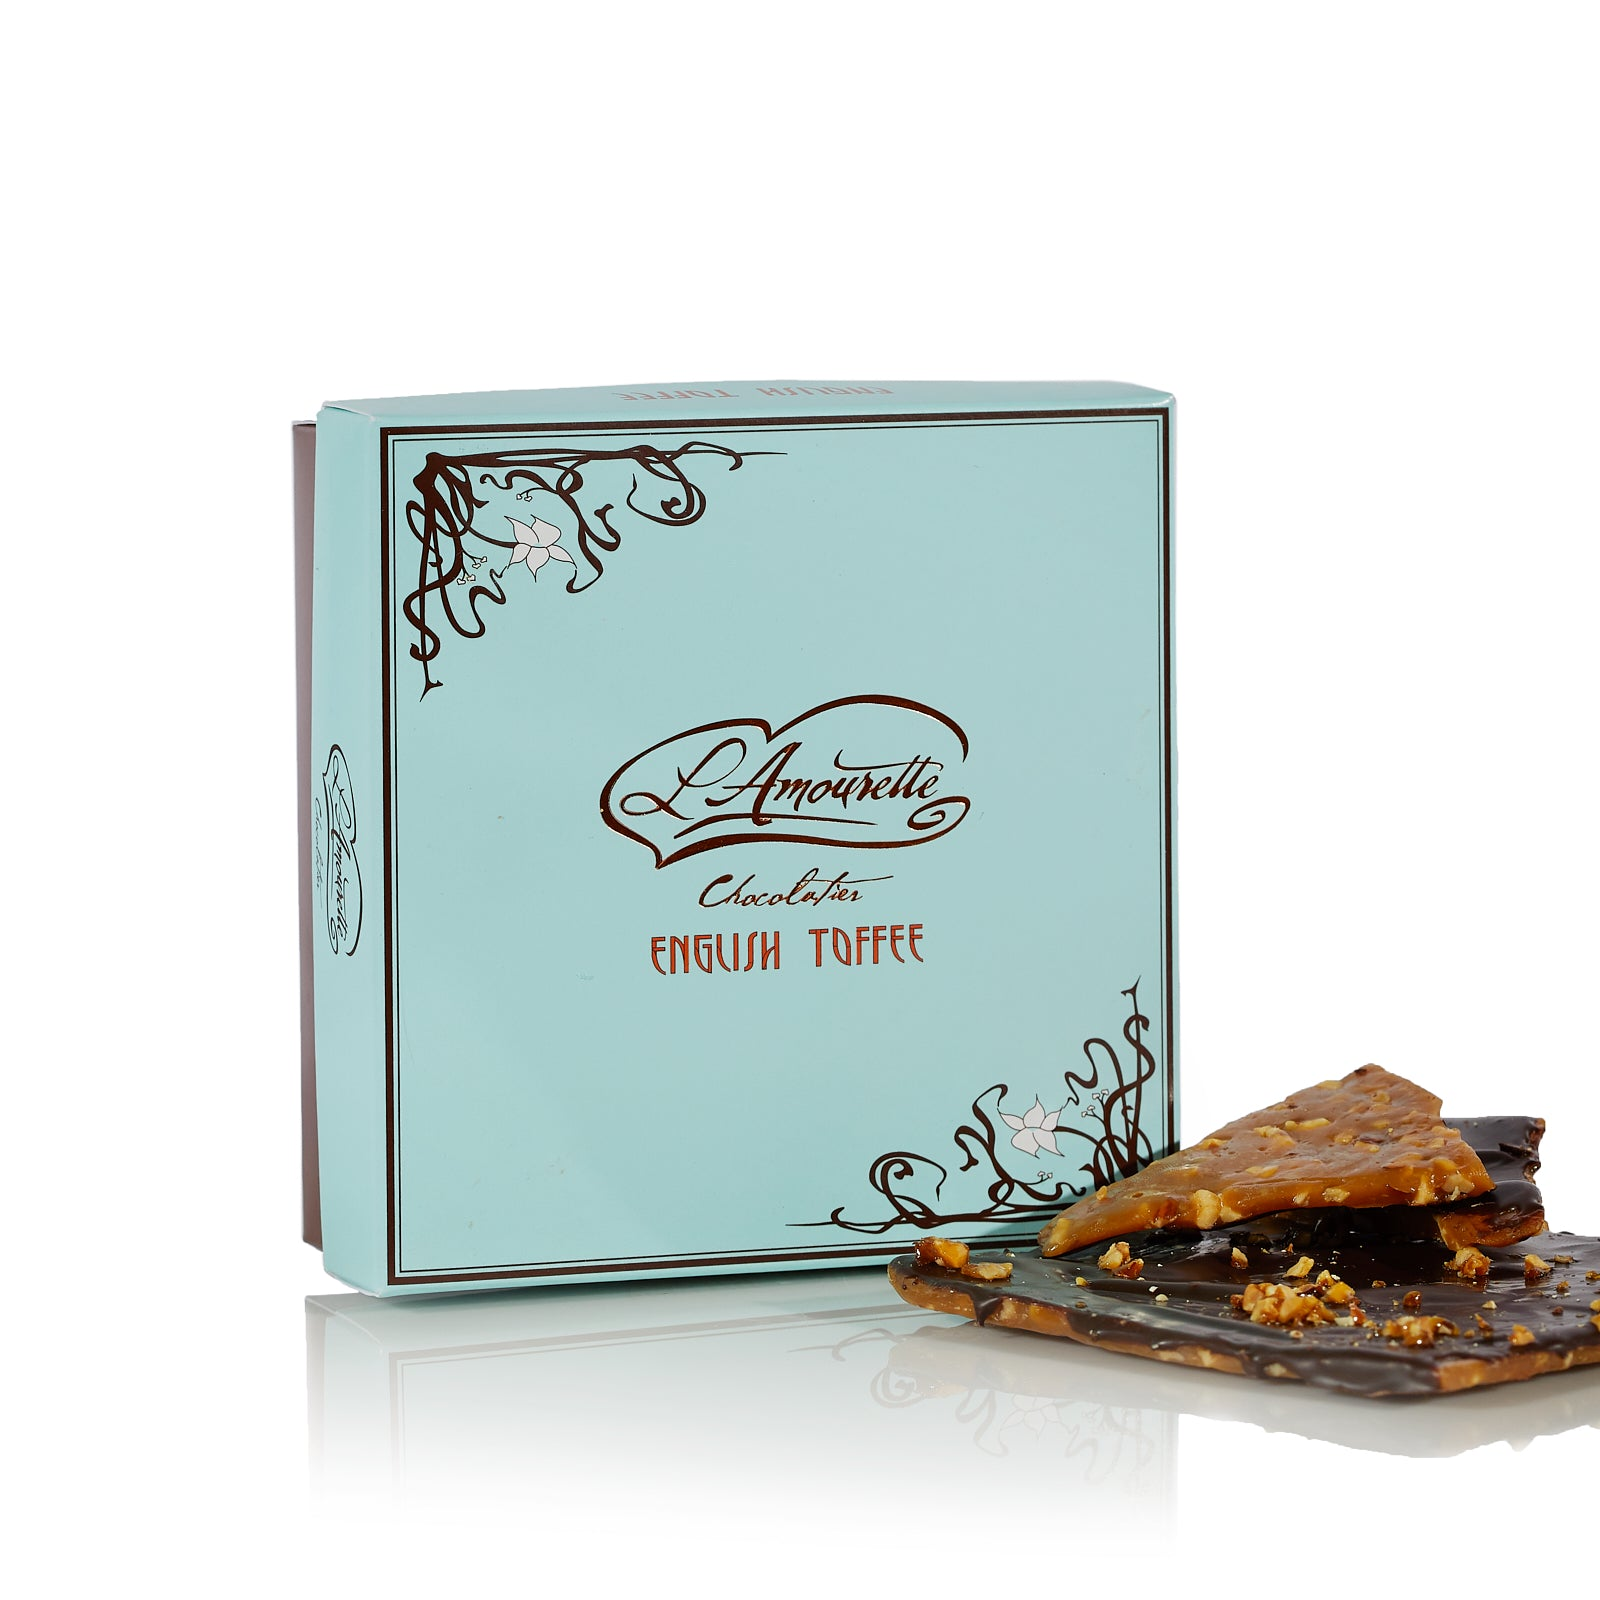 L'Amourette, Chocolate English Toffee Box